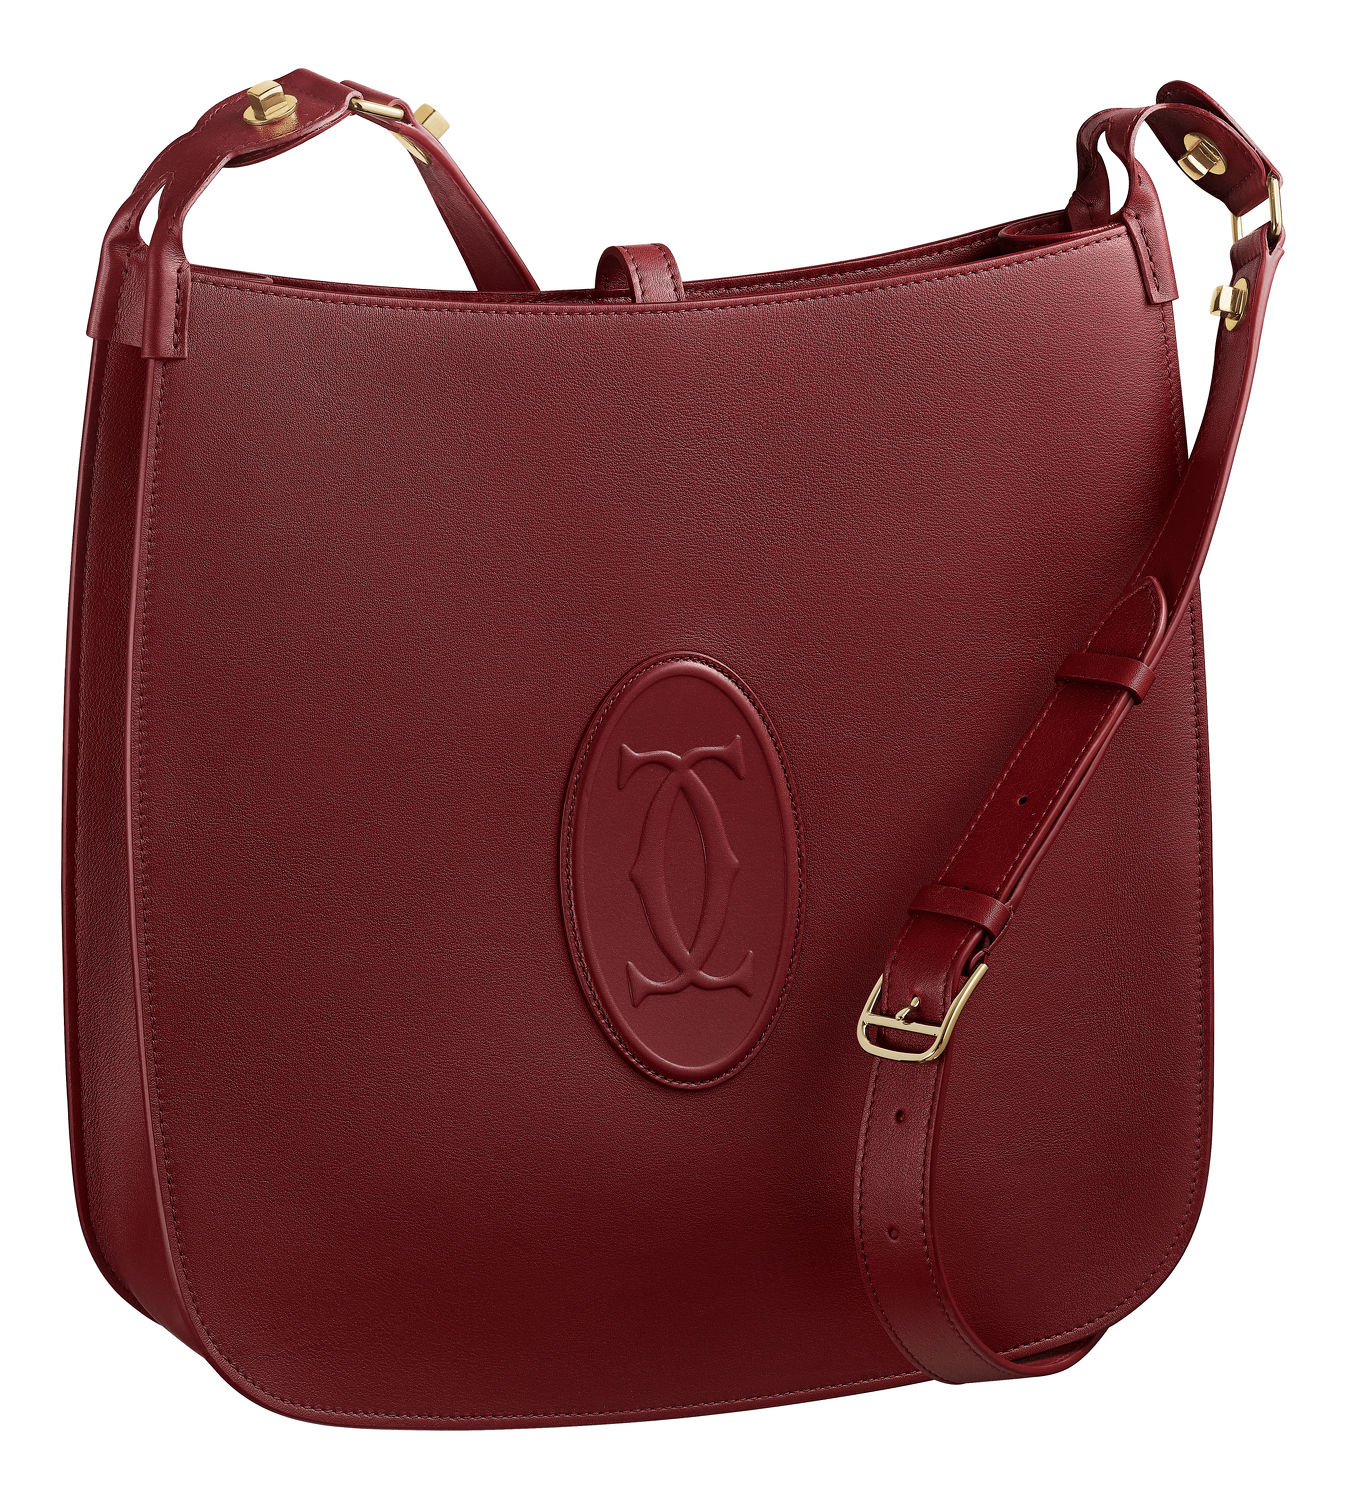 The Must Game bag by Cartier in Burgundy - THE EDGE SINGAPORE